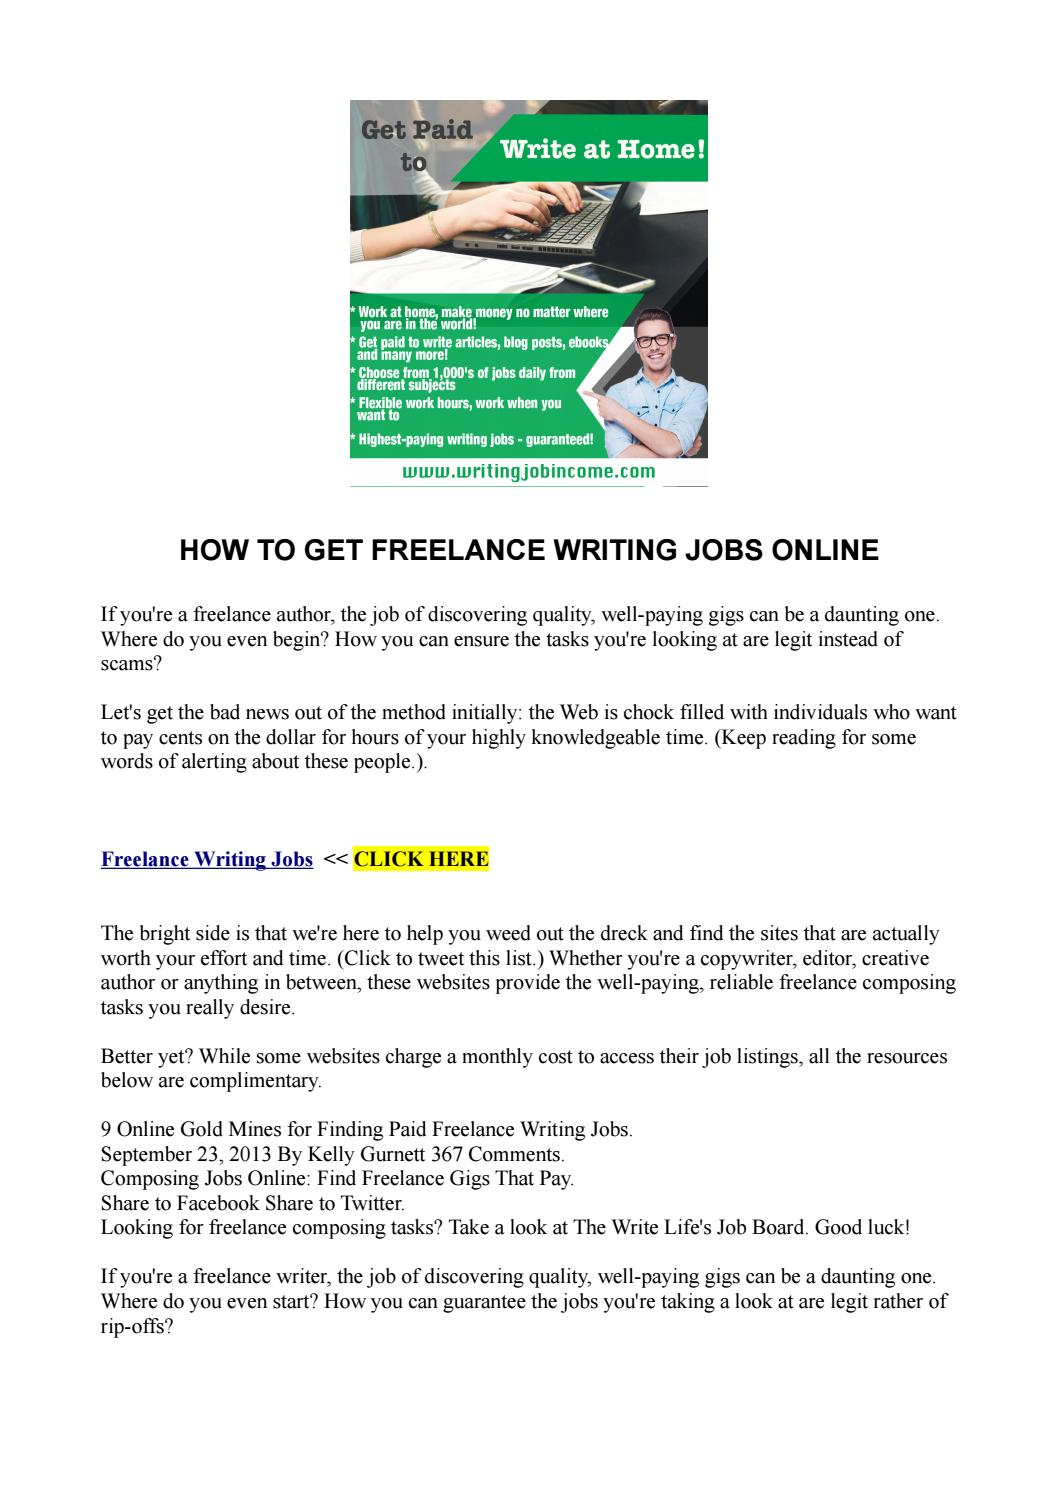 lance jobs that pay well how can i get paid to lance reading  how to get lance writing jobs online writingjobincome how to get lance writing jobs online writingjobincome